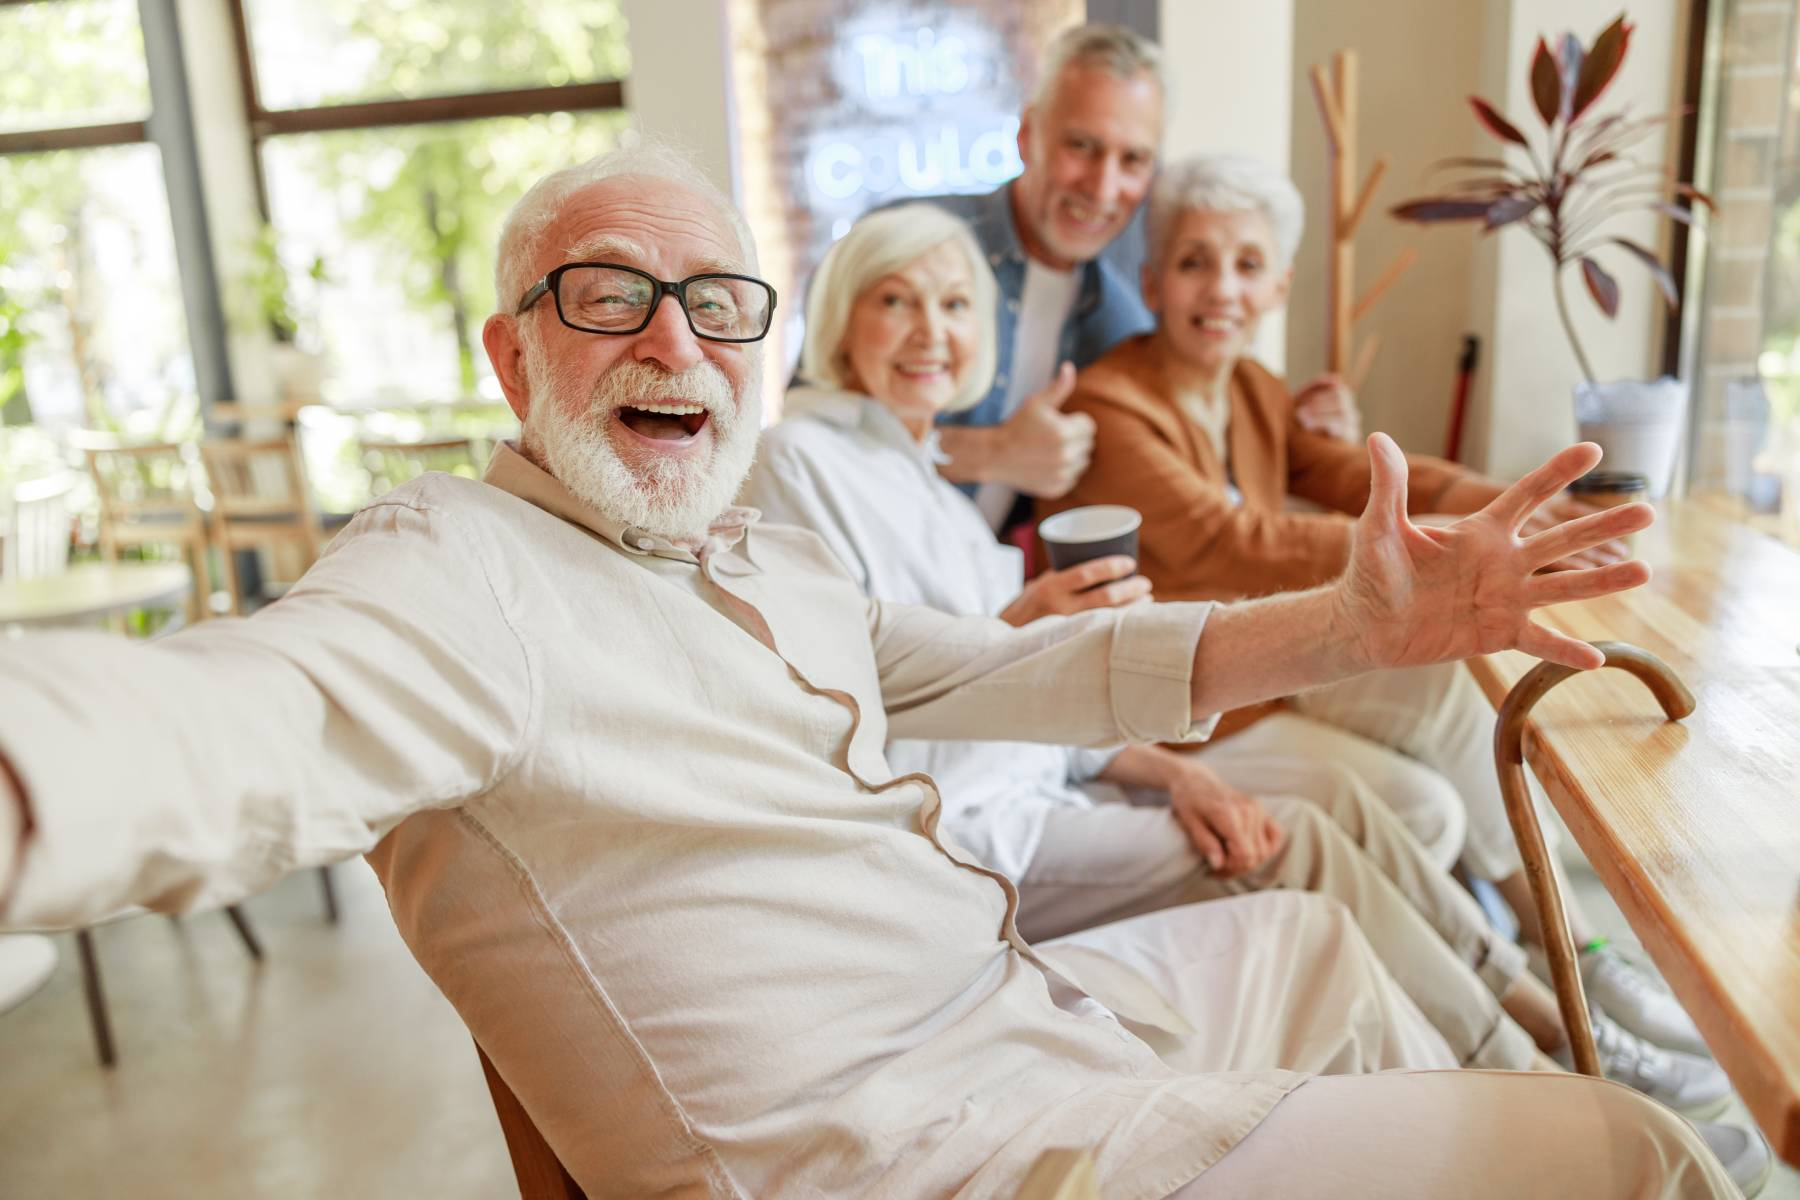 seniors socializing together while smiling and having fun